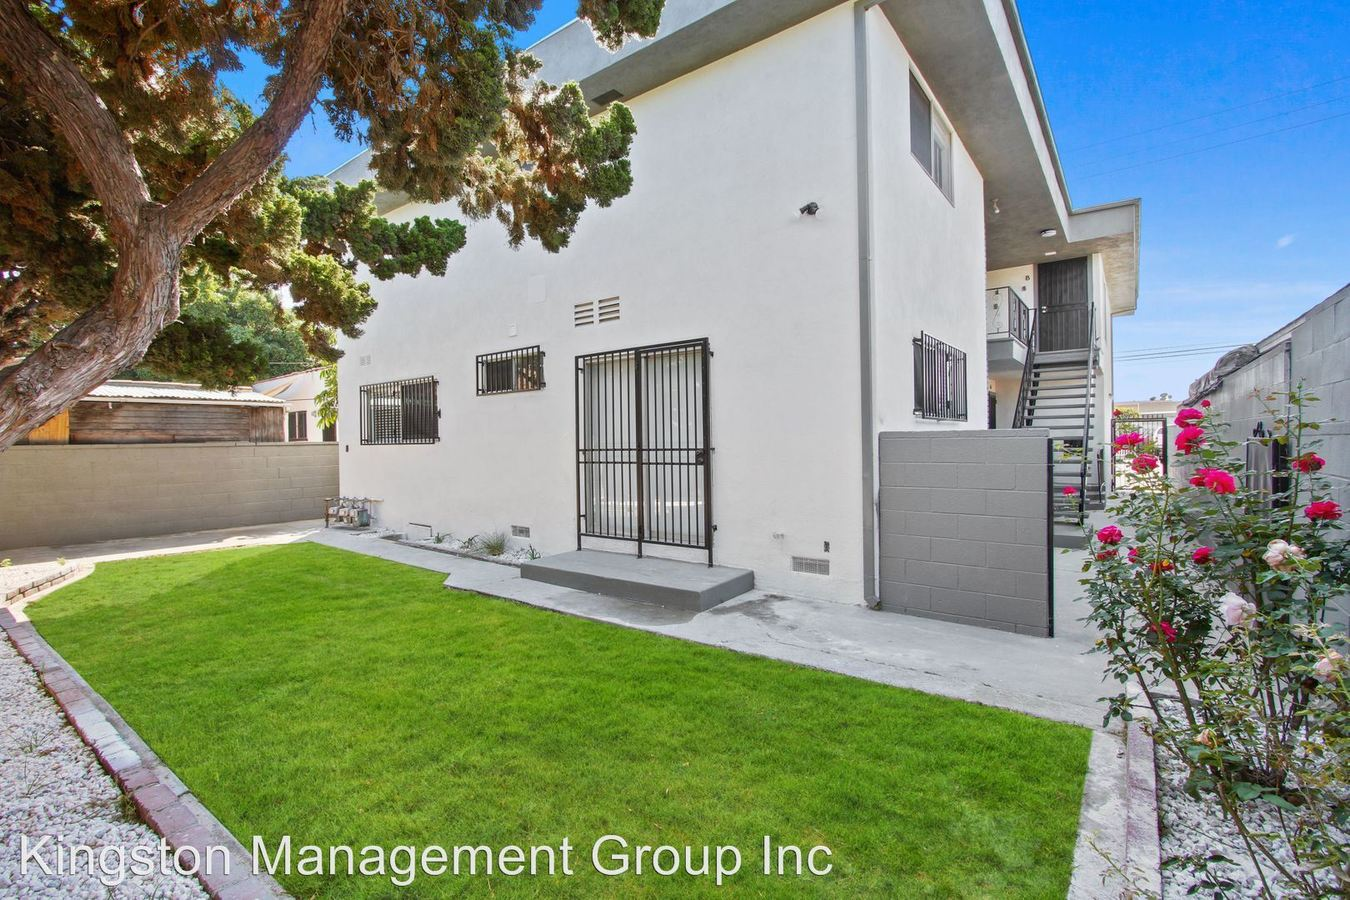 2 Bedrooms 2 Bathrooms Apartment for rent at 4511 W. 120th St in Hawthorne, CA